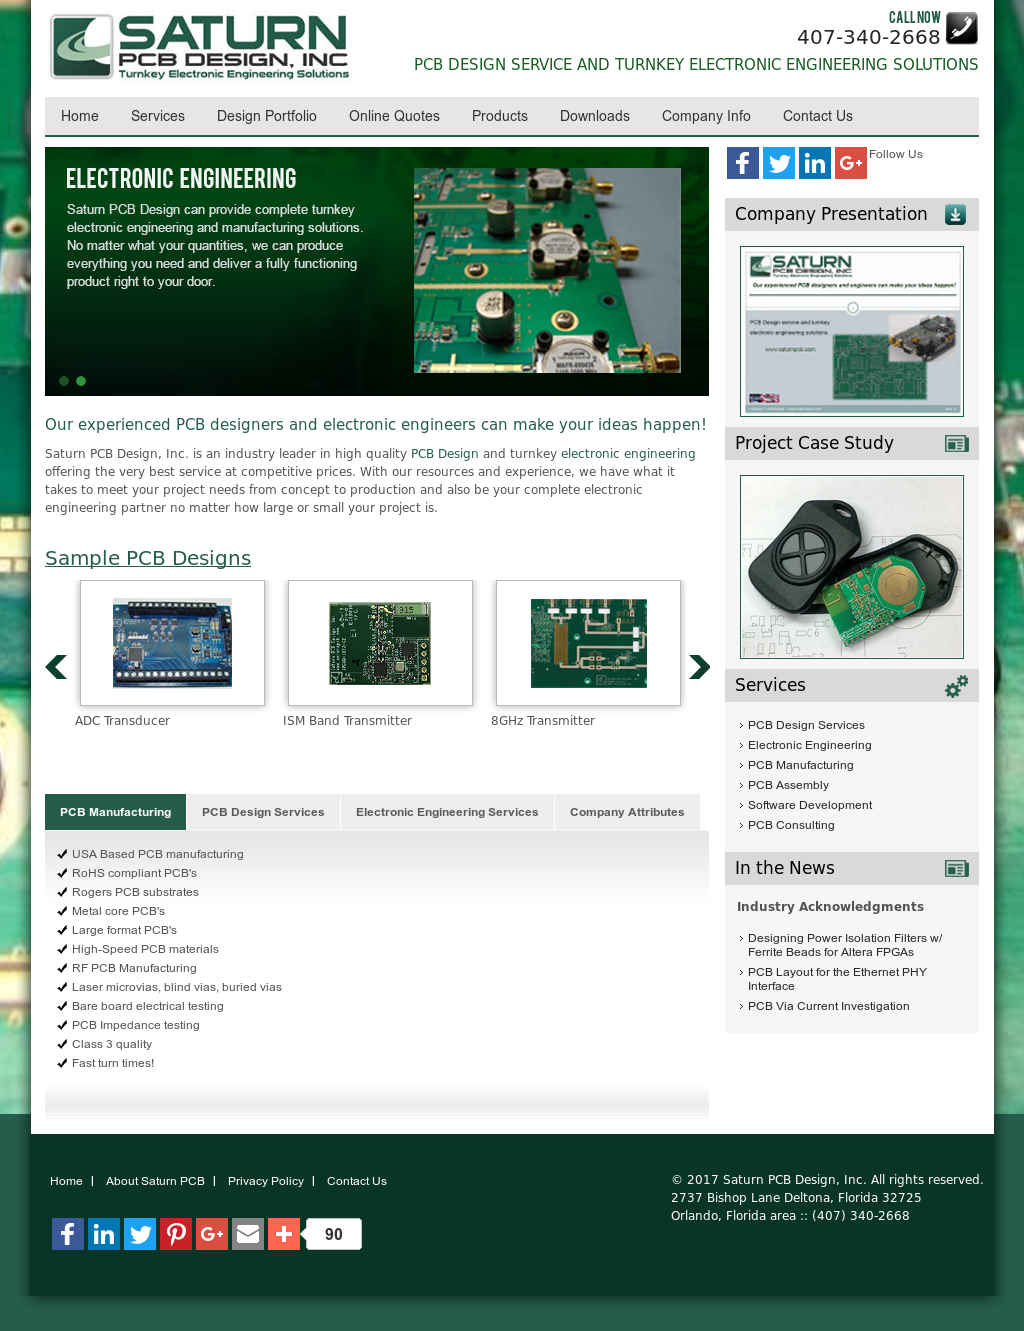 Saturn Pcb Design Competitors, Revenue and Employees - Owler Company ...